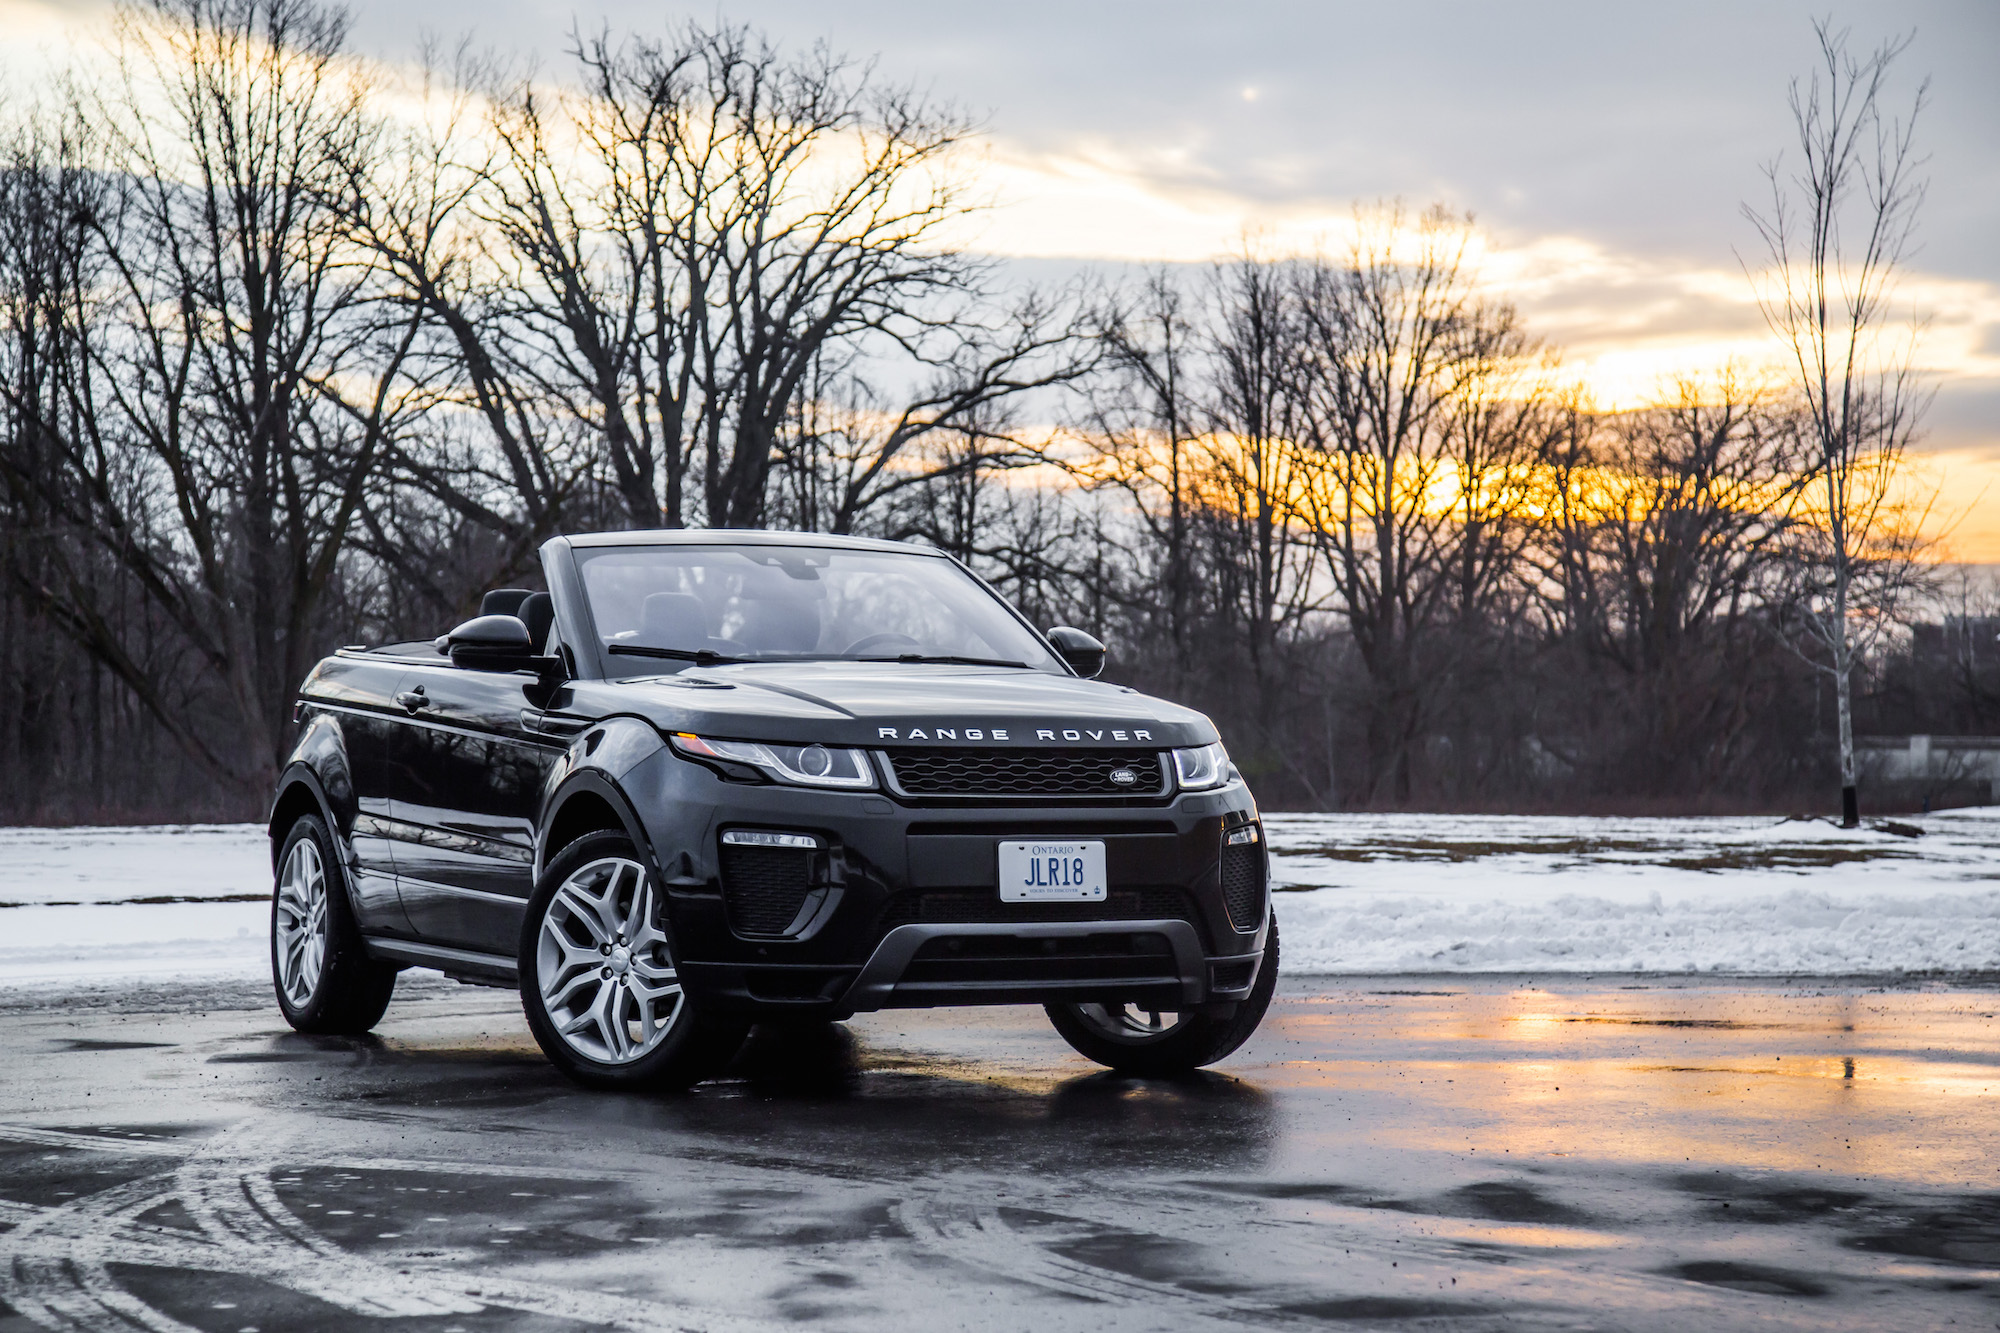 Range Rover Evoque Convertible >> Review: 2017 Range Rover Evoque Convertible | Canadian ...